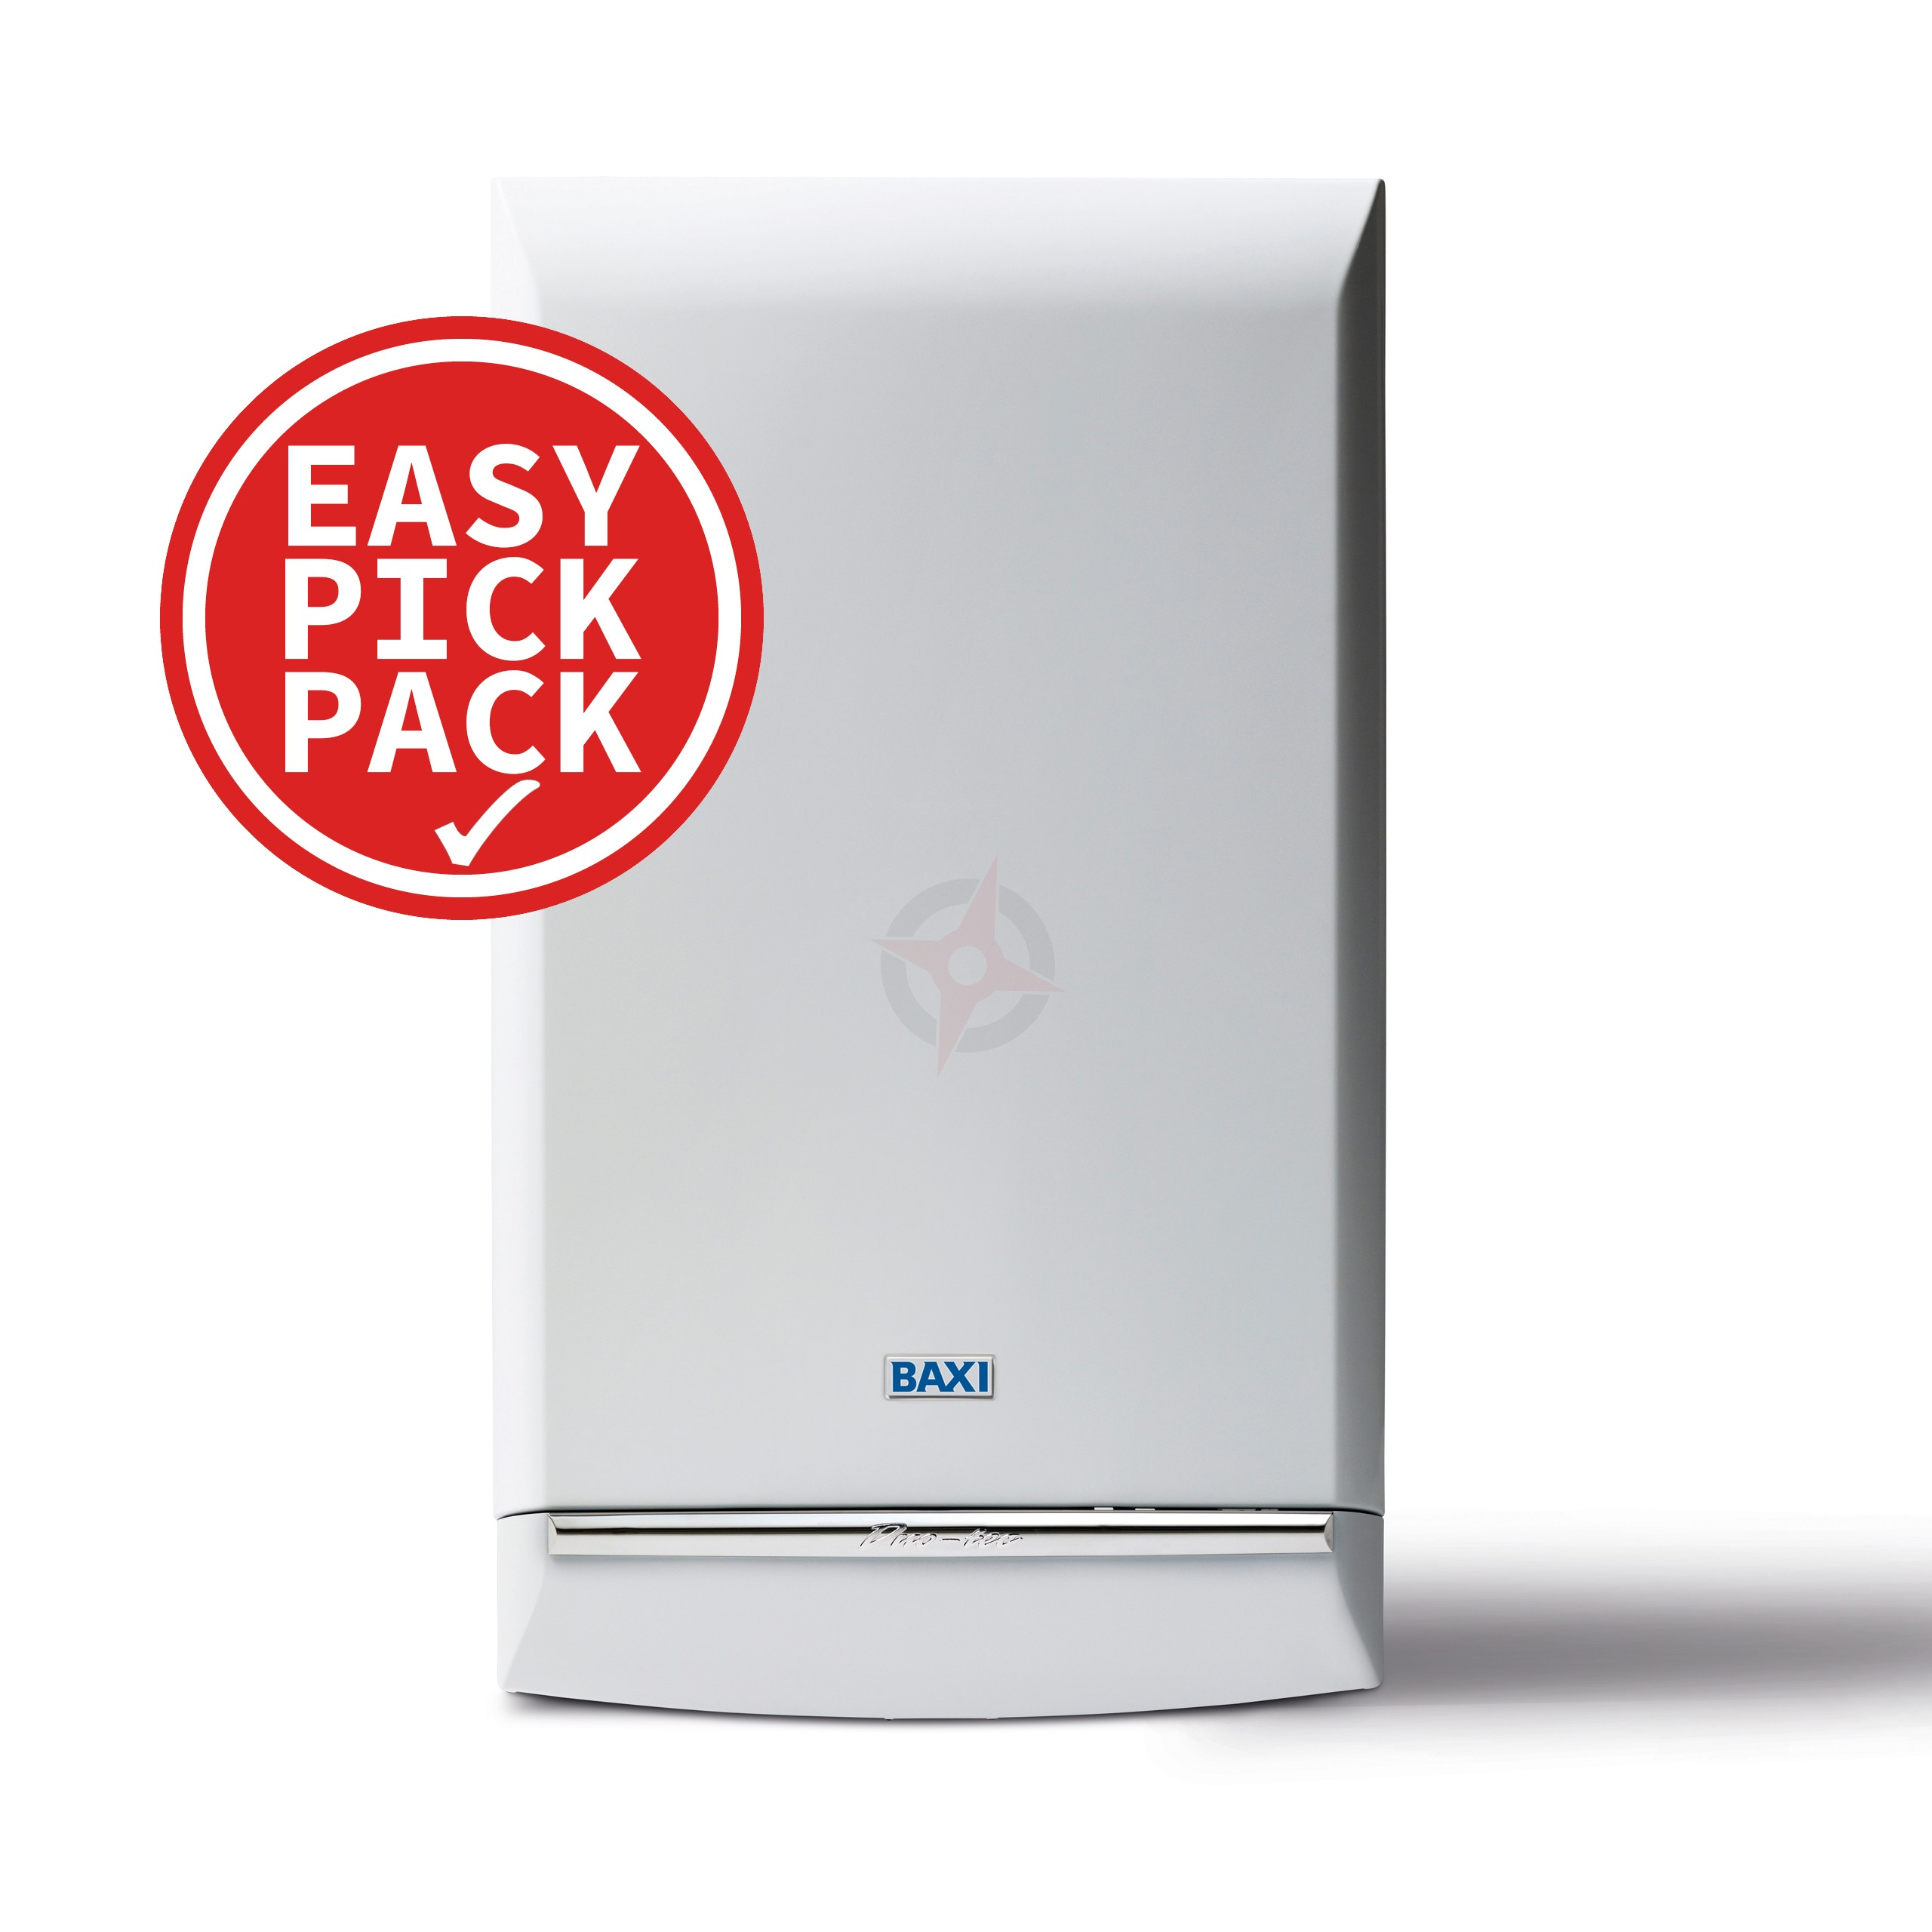 Baxi Duo-Tec 28 (ErP) Combi Boiler, Easy Pick Pack